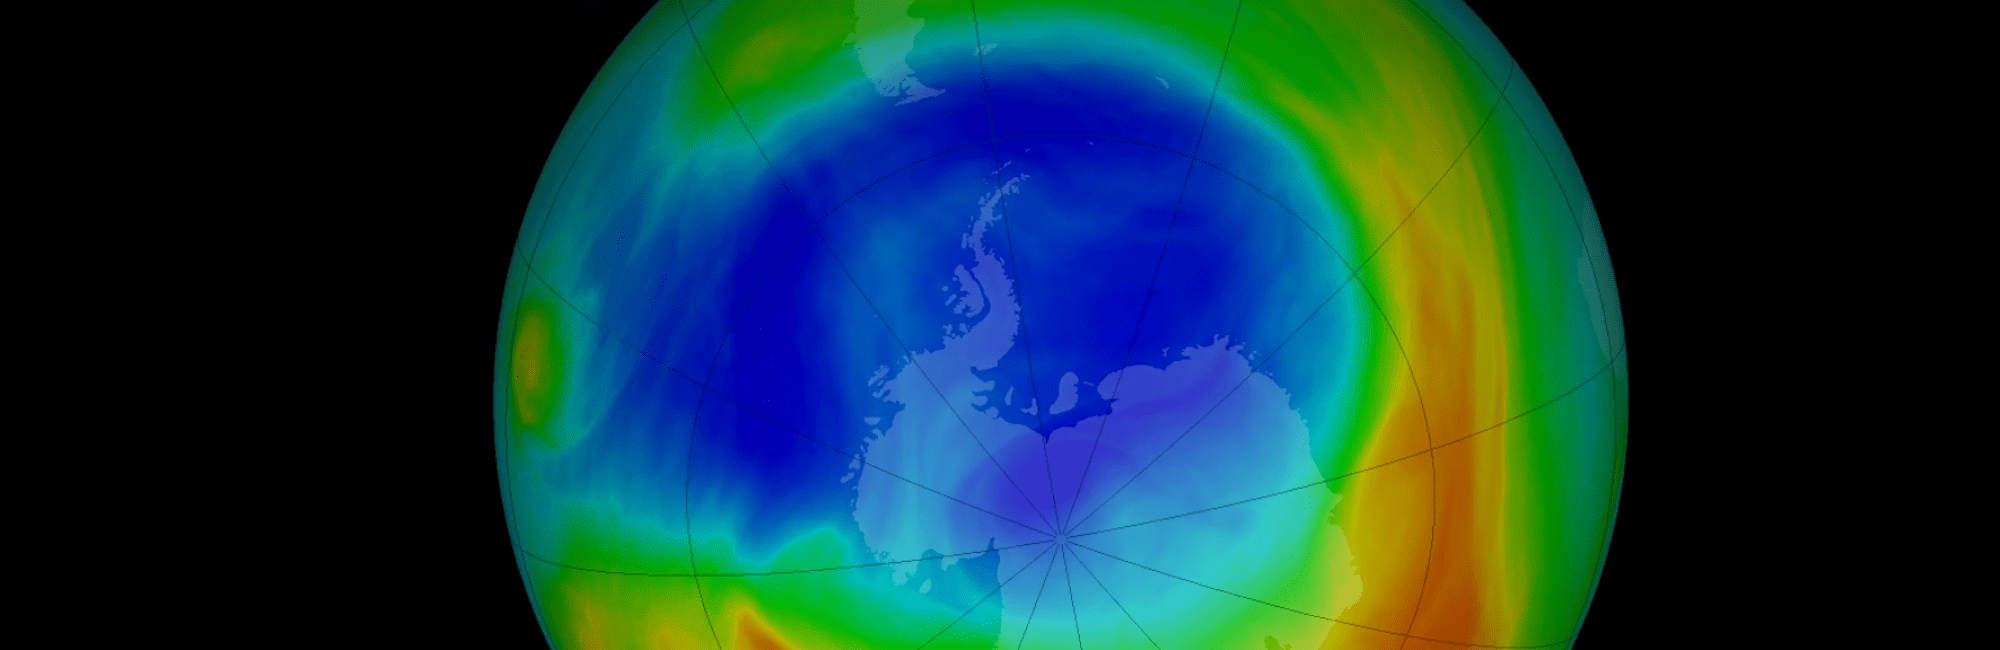 NASA visualization depicts 2019 ozone concentrations in Dobson Units, the standard measure for stratospheric ozone.